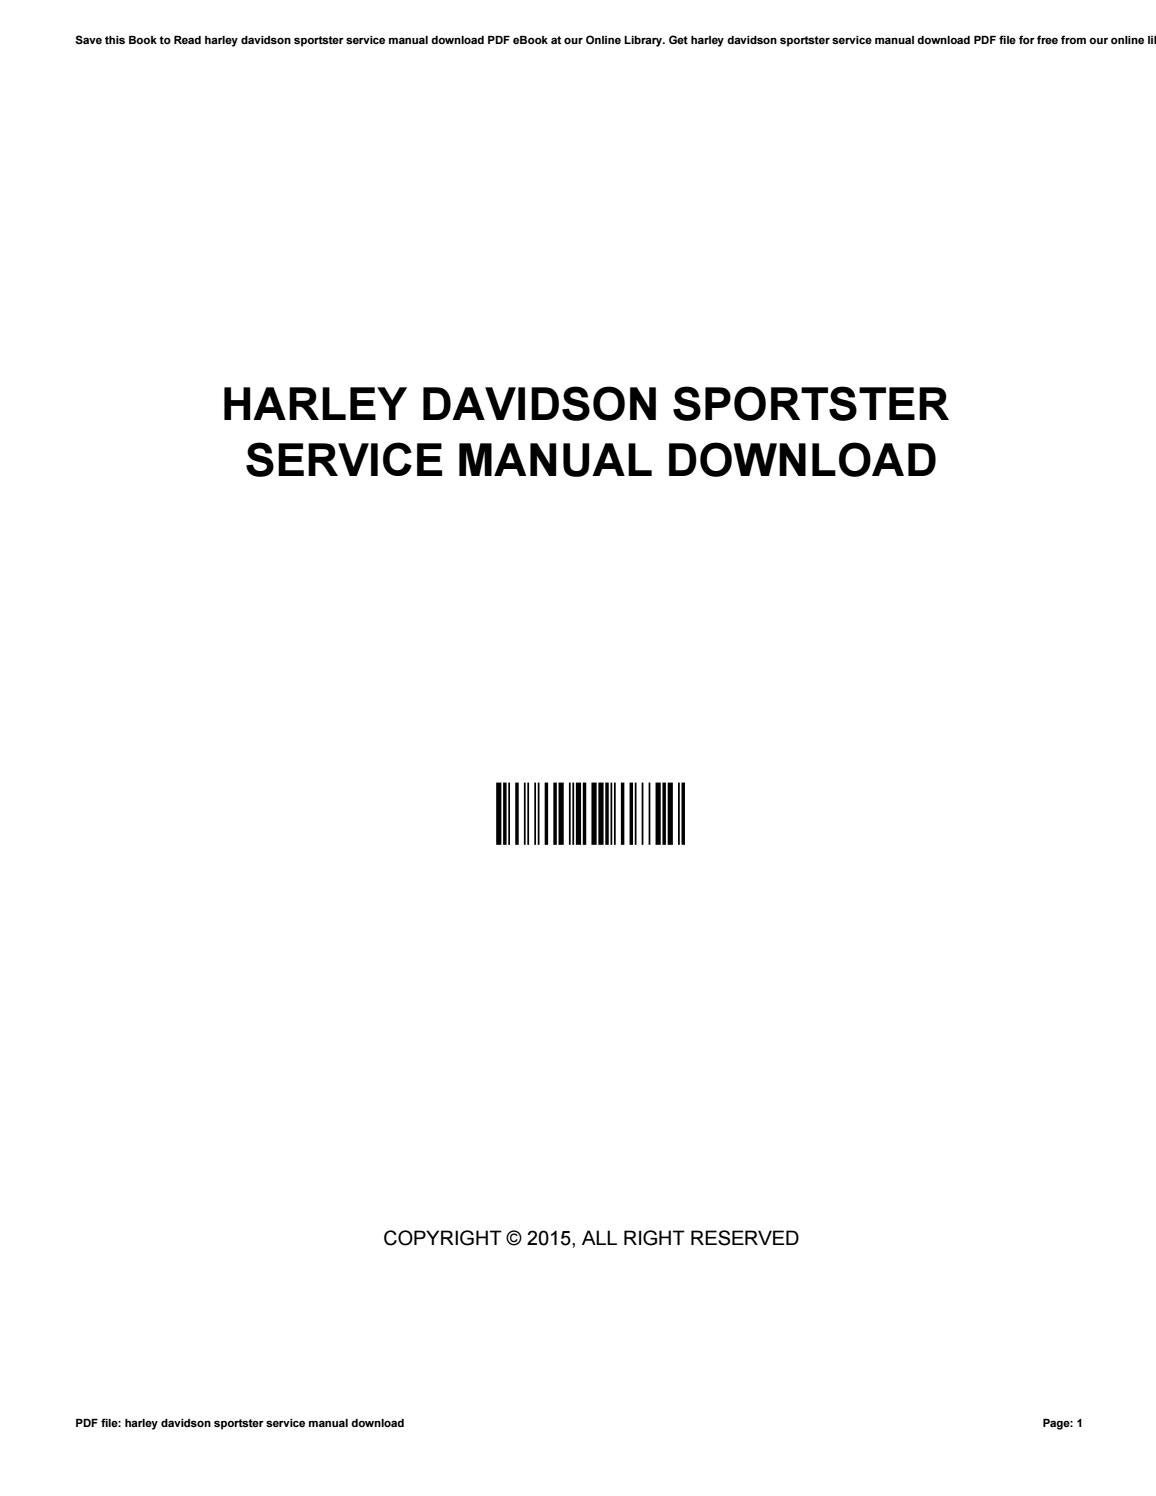 Harley davidson sportster service manual download by TyroneMontgomery4142 -  issuu